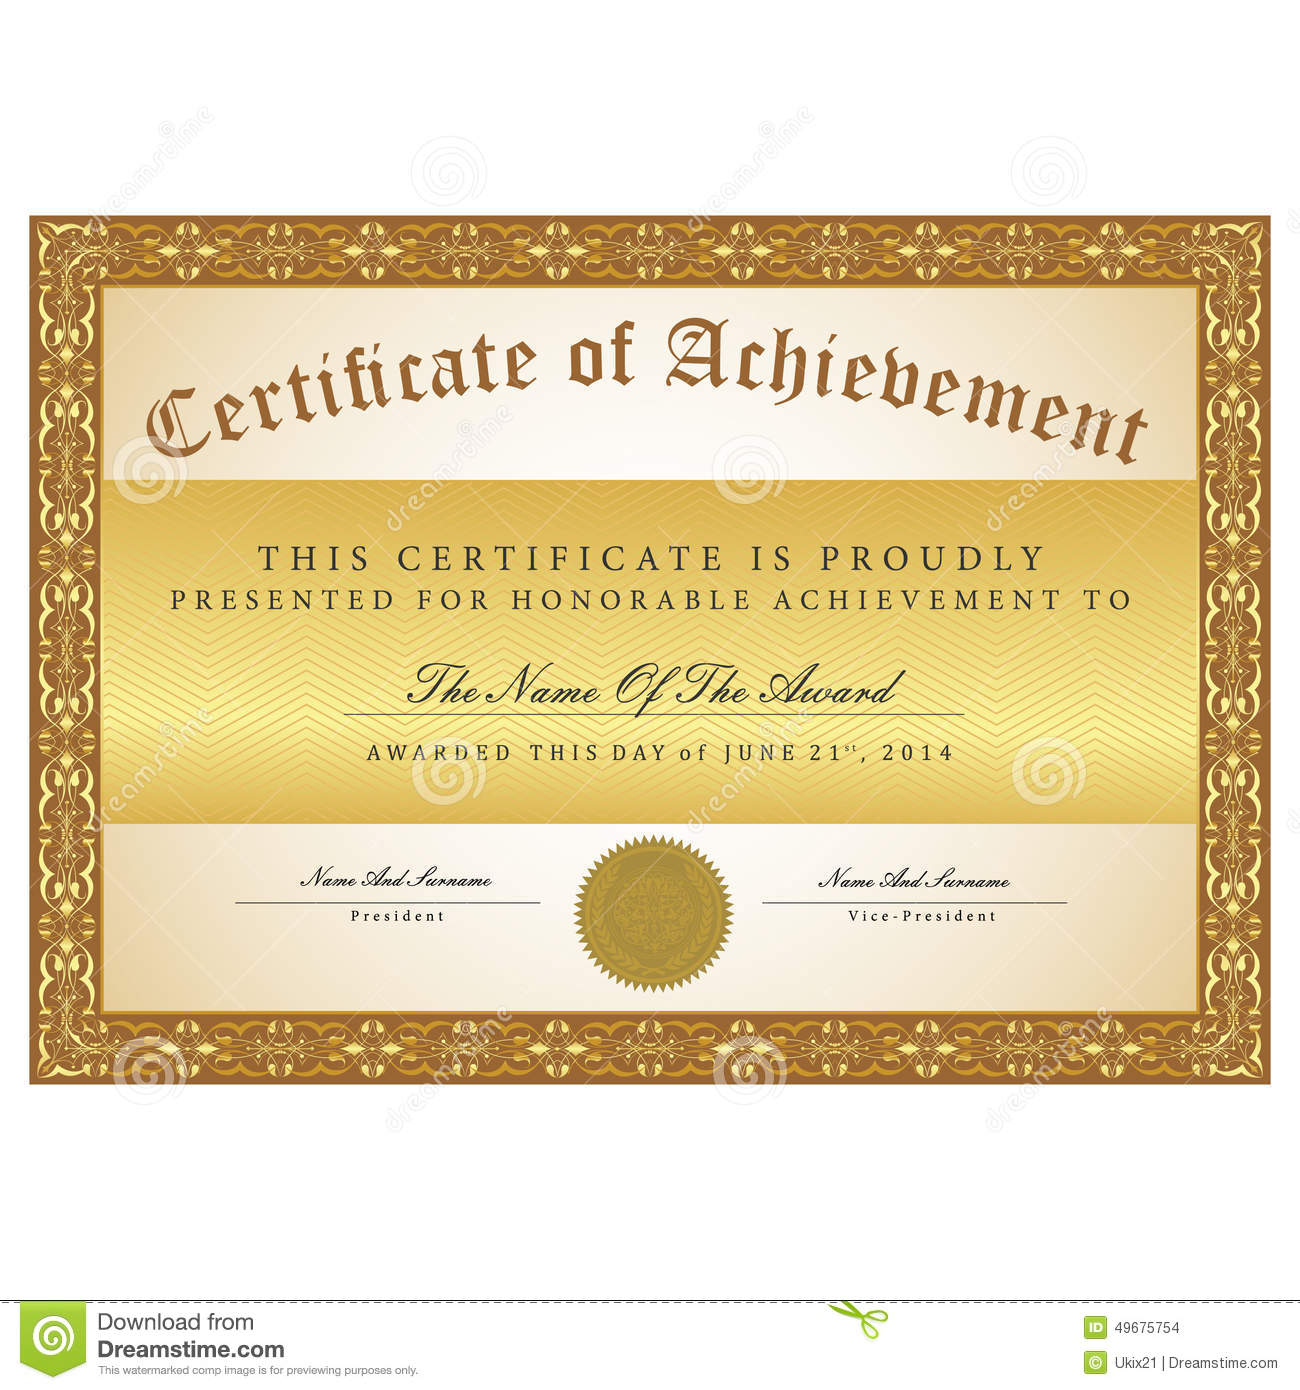 2 Certificates Templates Free Download Clip Art Security